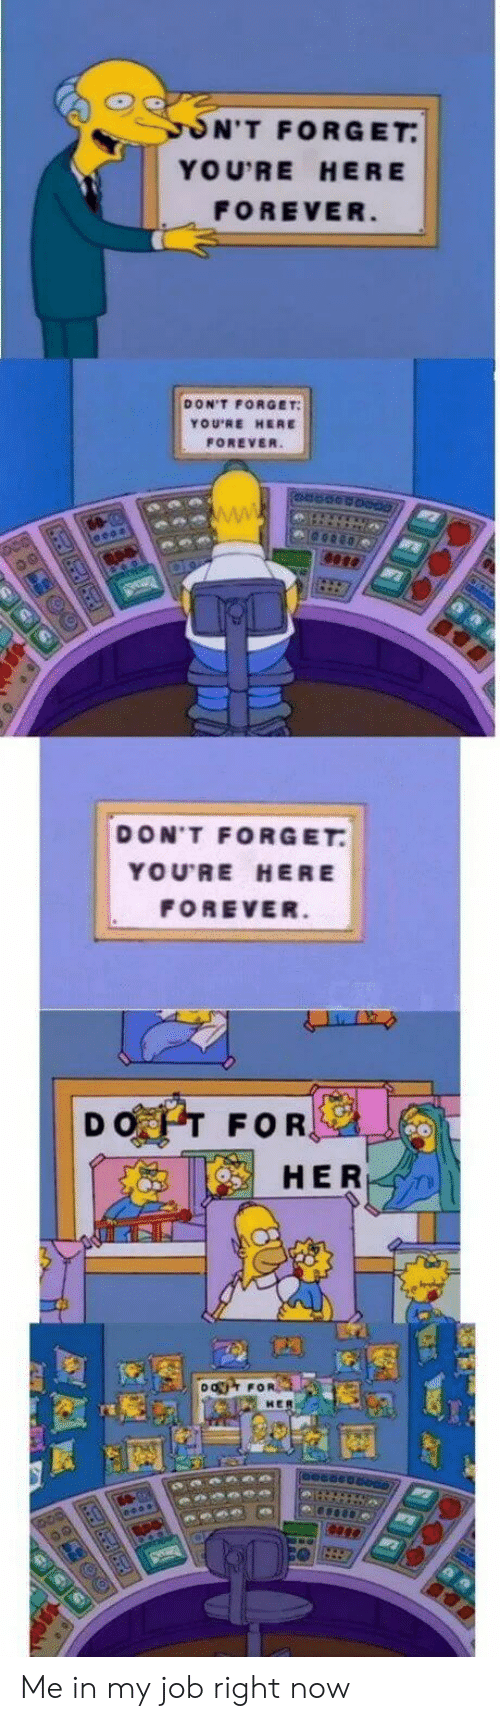 Forever, Her, and Job: ON'T FORGET  YOU'RE HERE  FOREVER  DON'T FORGET  YOU'RE HERE  FOREVER.  DON'T FORGET  YOU'RE HERE  FOREVER.  DOT FOR,  HER  DO FOR Me in my job right now